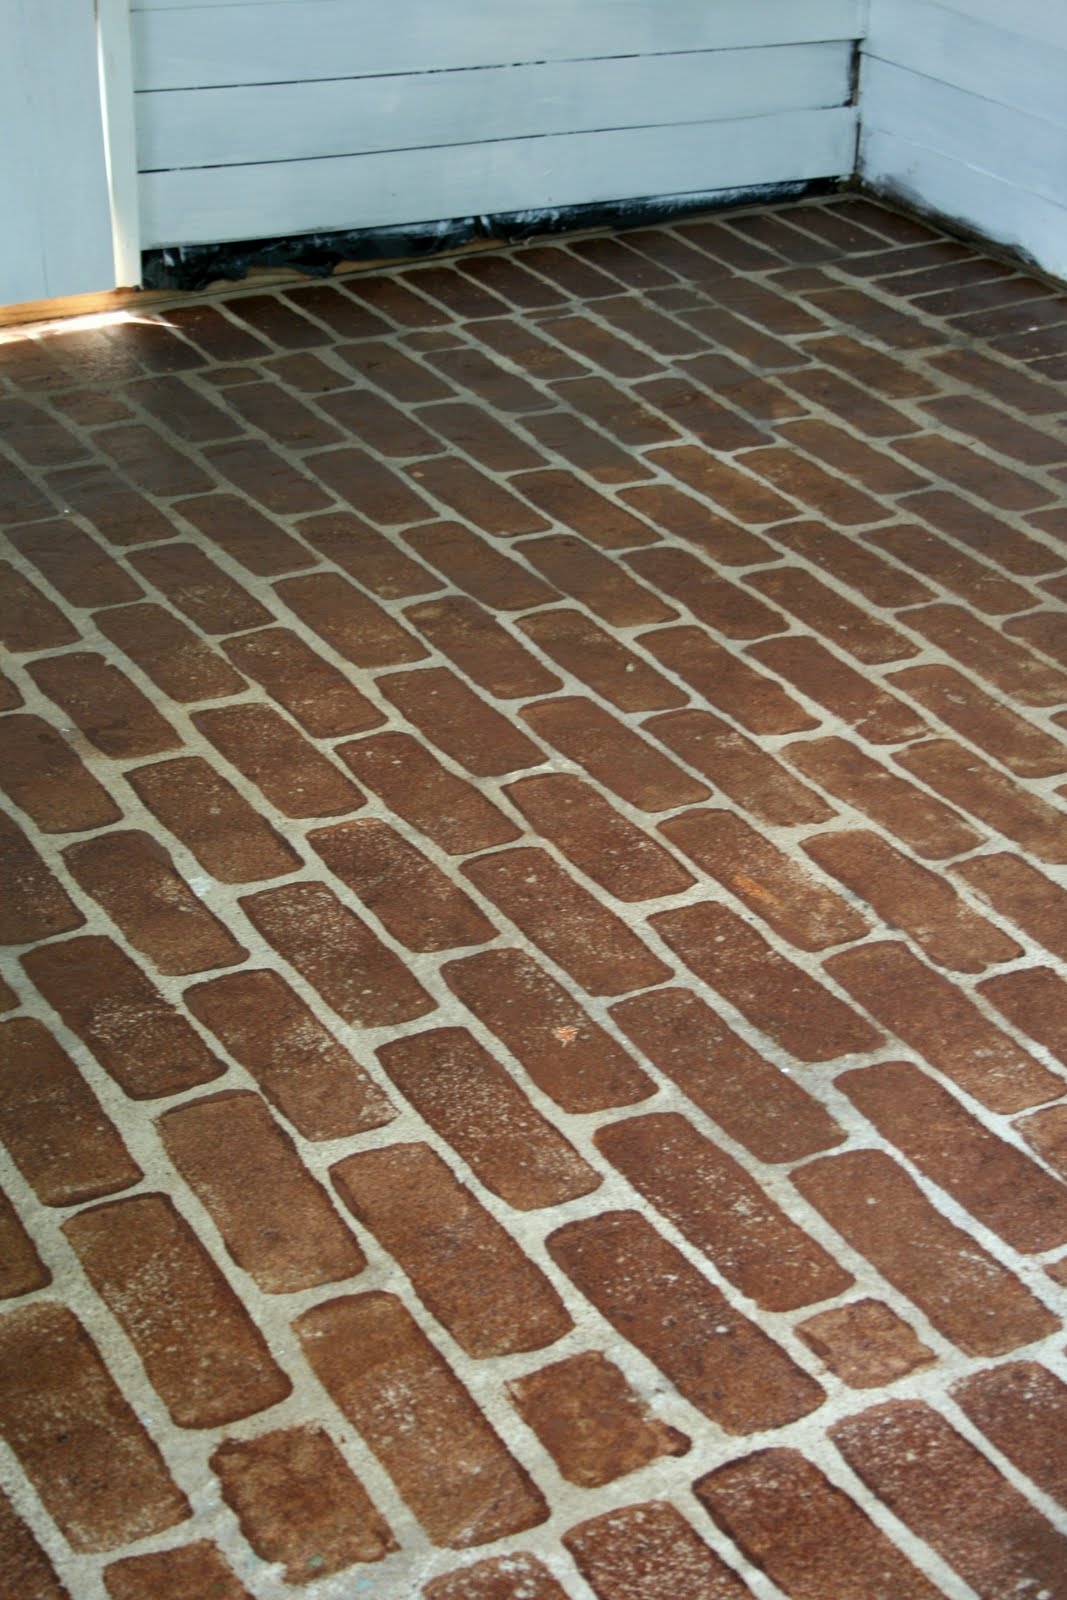 The Virginia House Faux Stained Brick Floor Tutorial